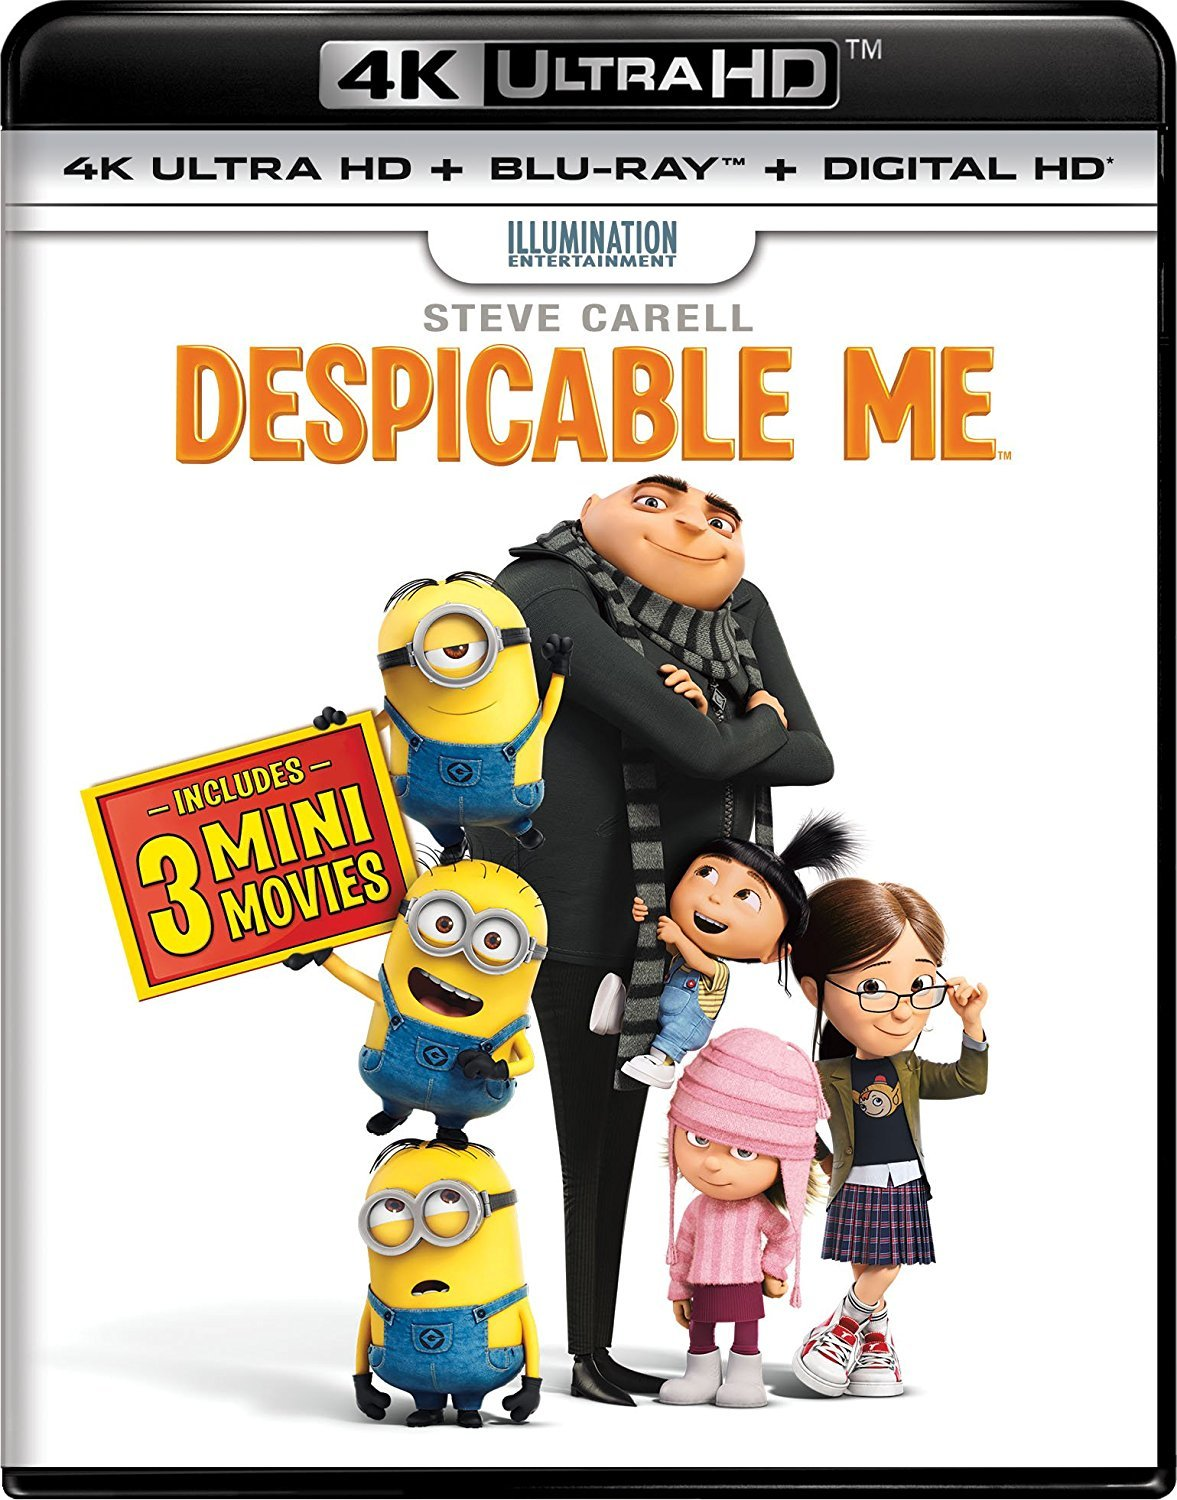 Despicable Me 4K (2010) UHD Ultra HD Blu-ray Dolby Vision